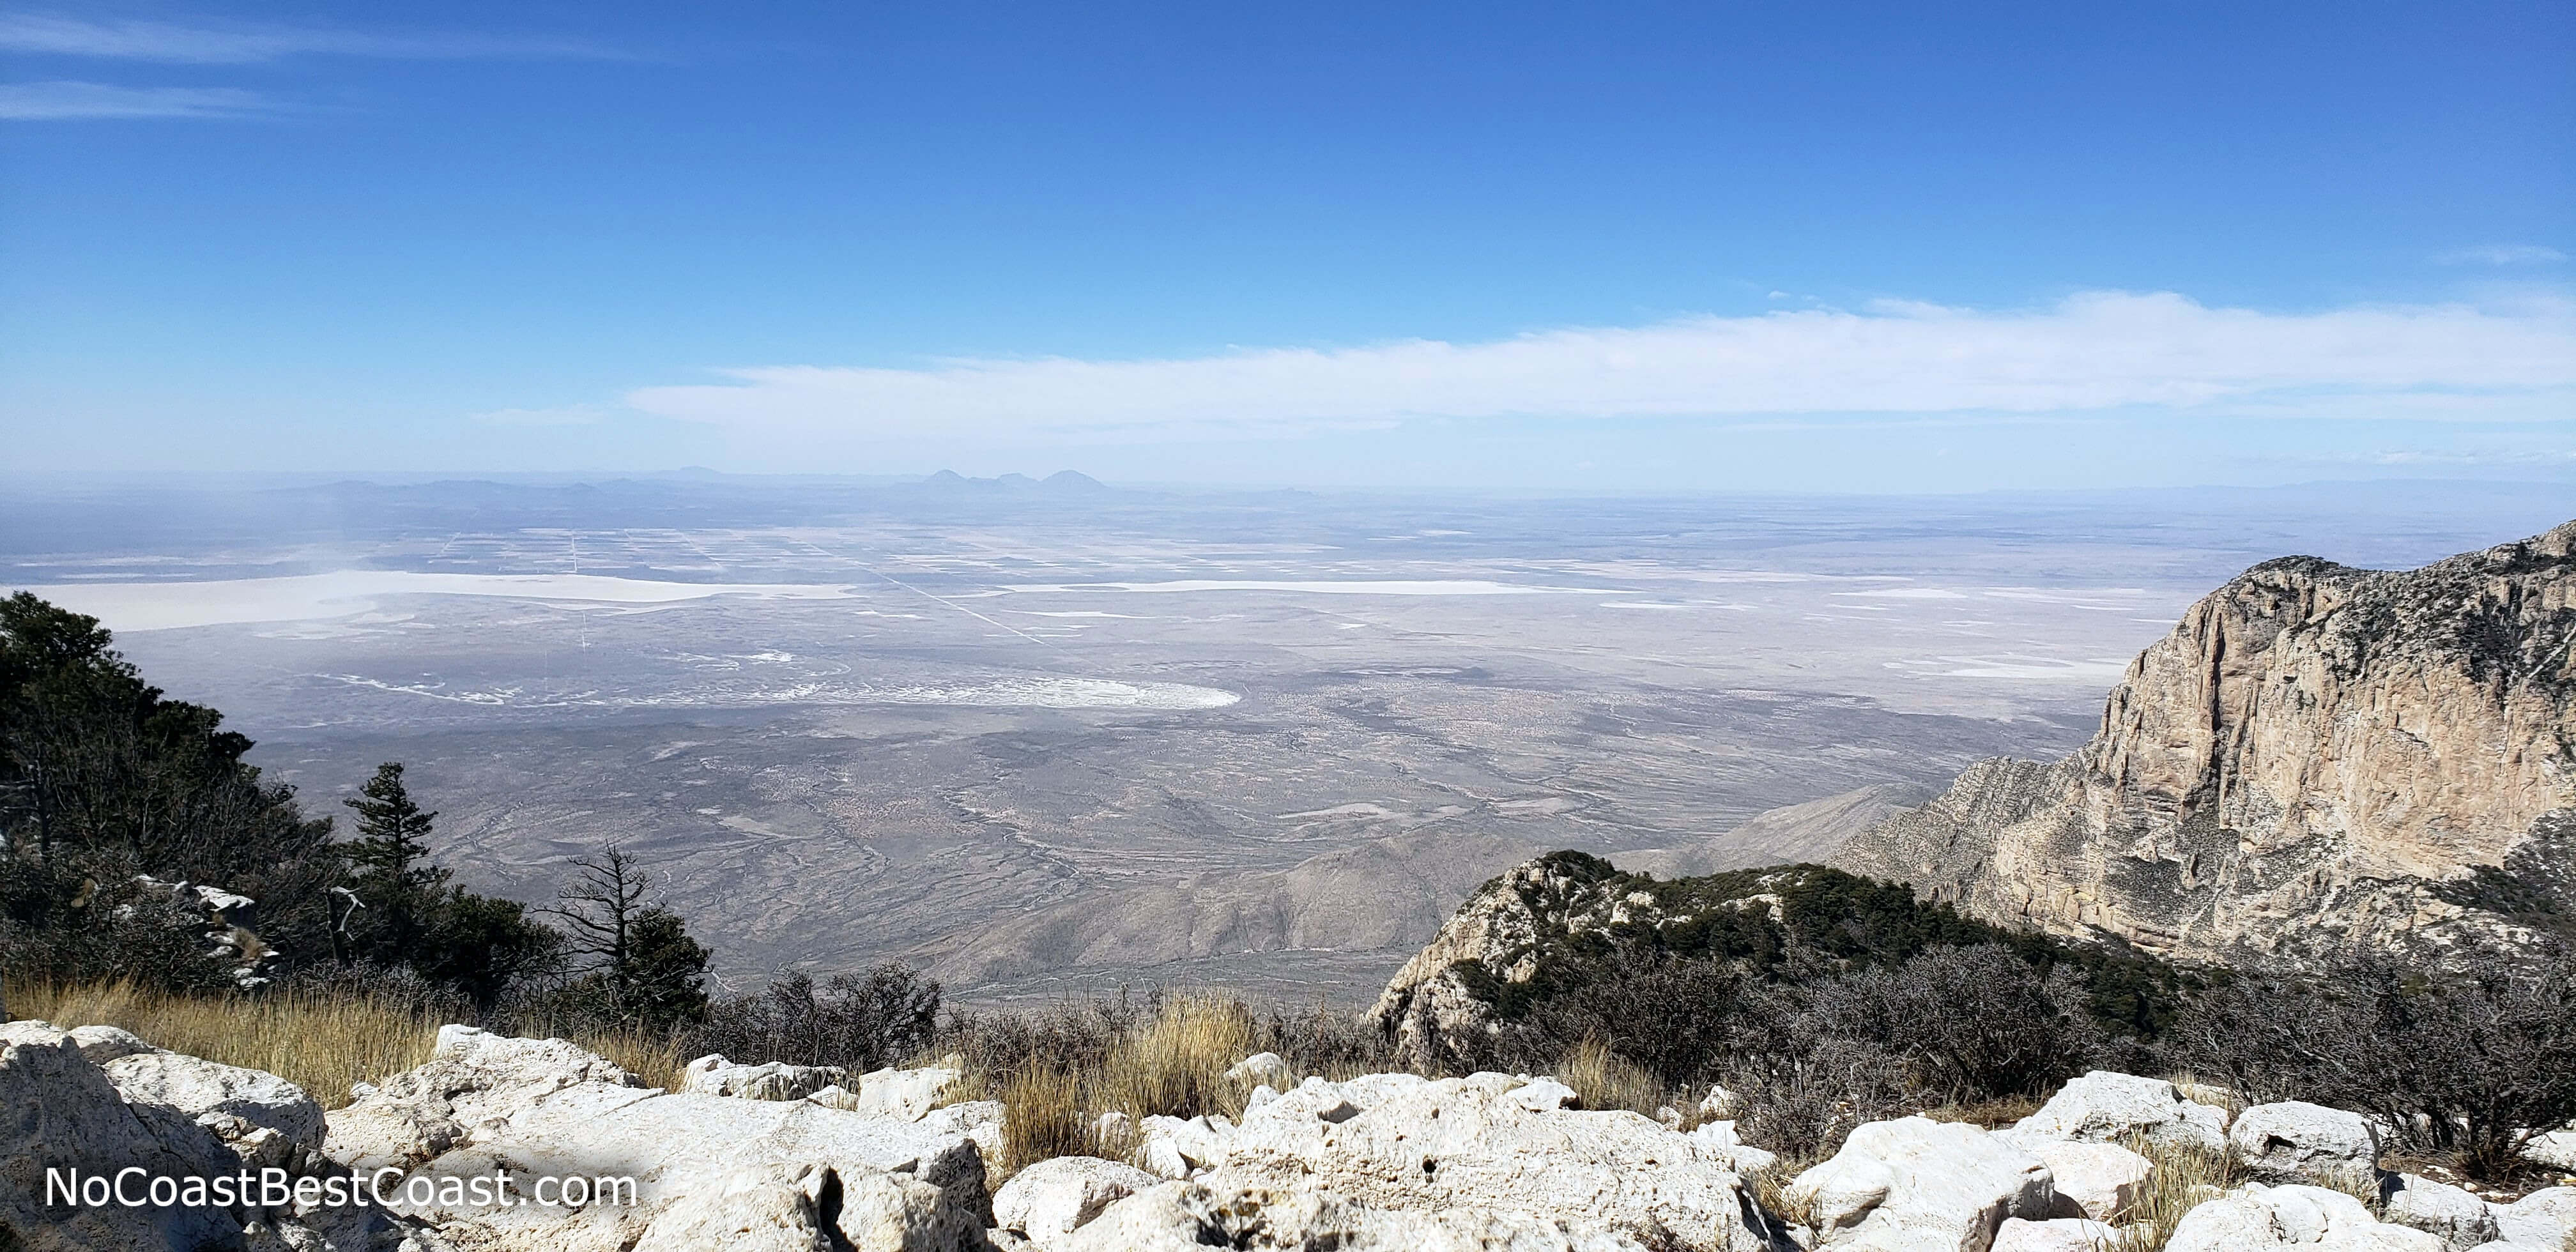 Views of the Salt Basin Dunes below and Franklin Mountains of El Paso in the far west